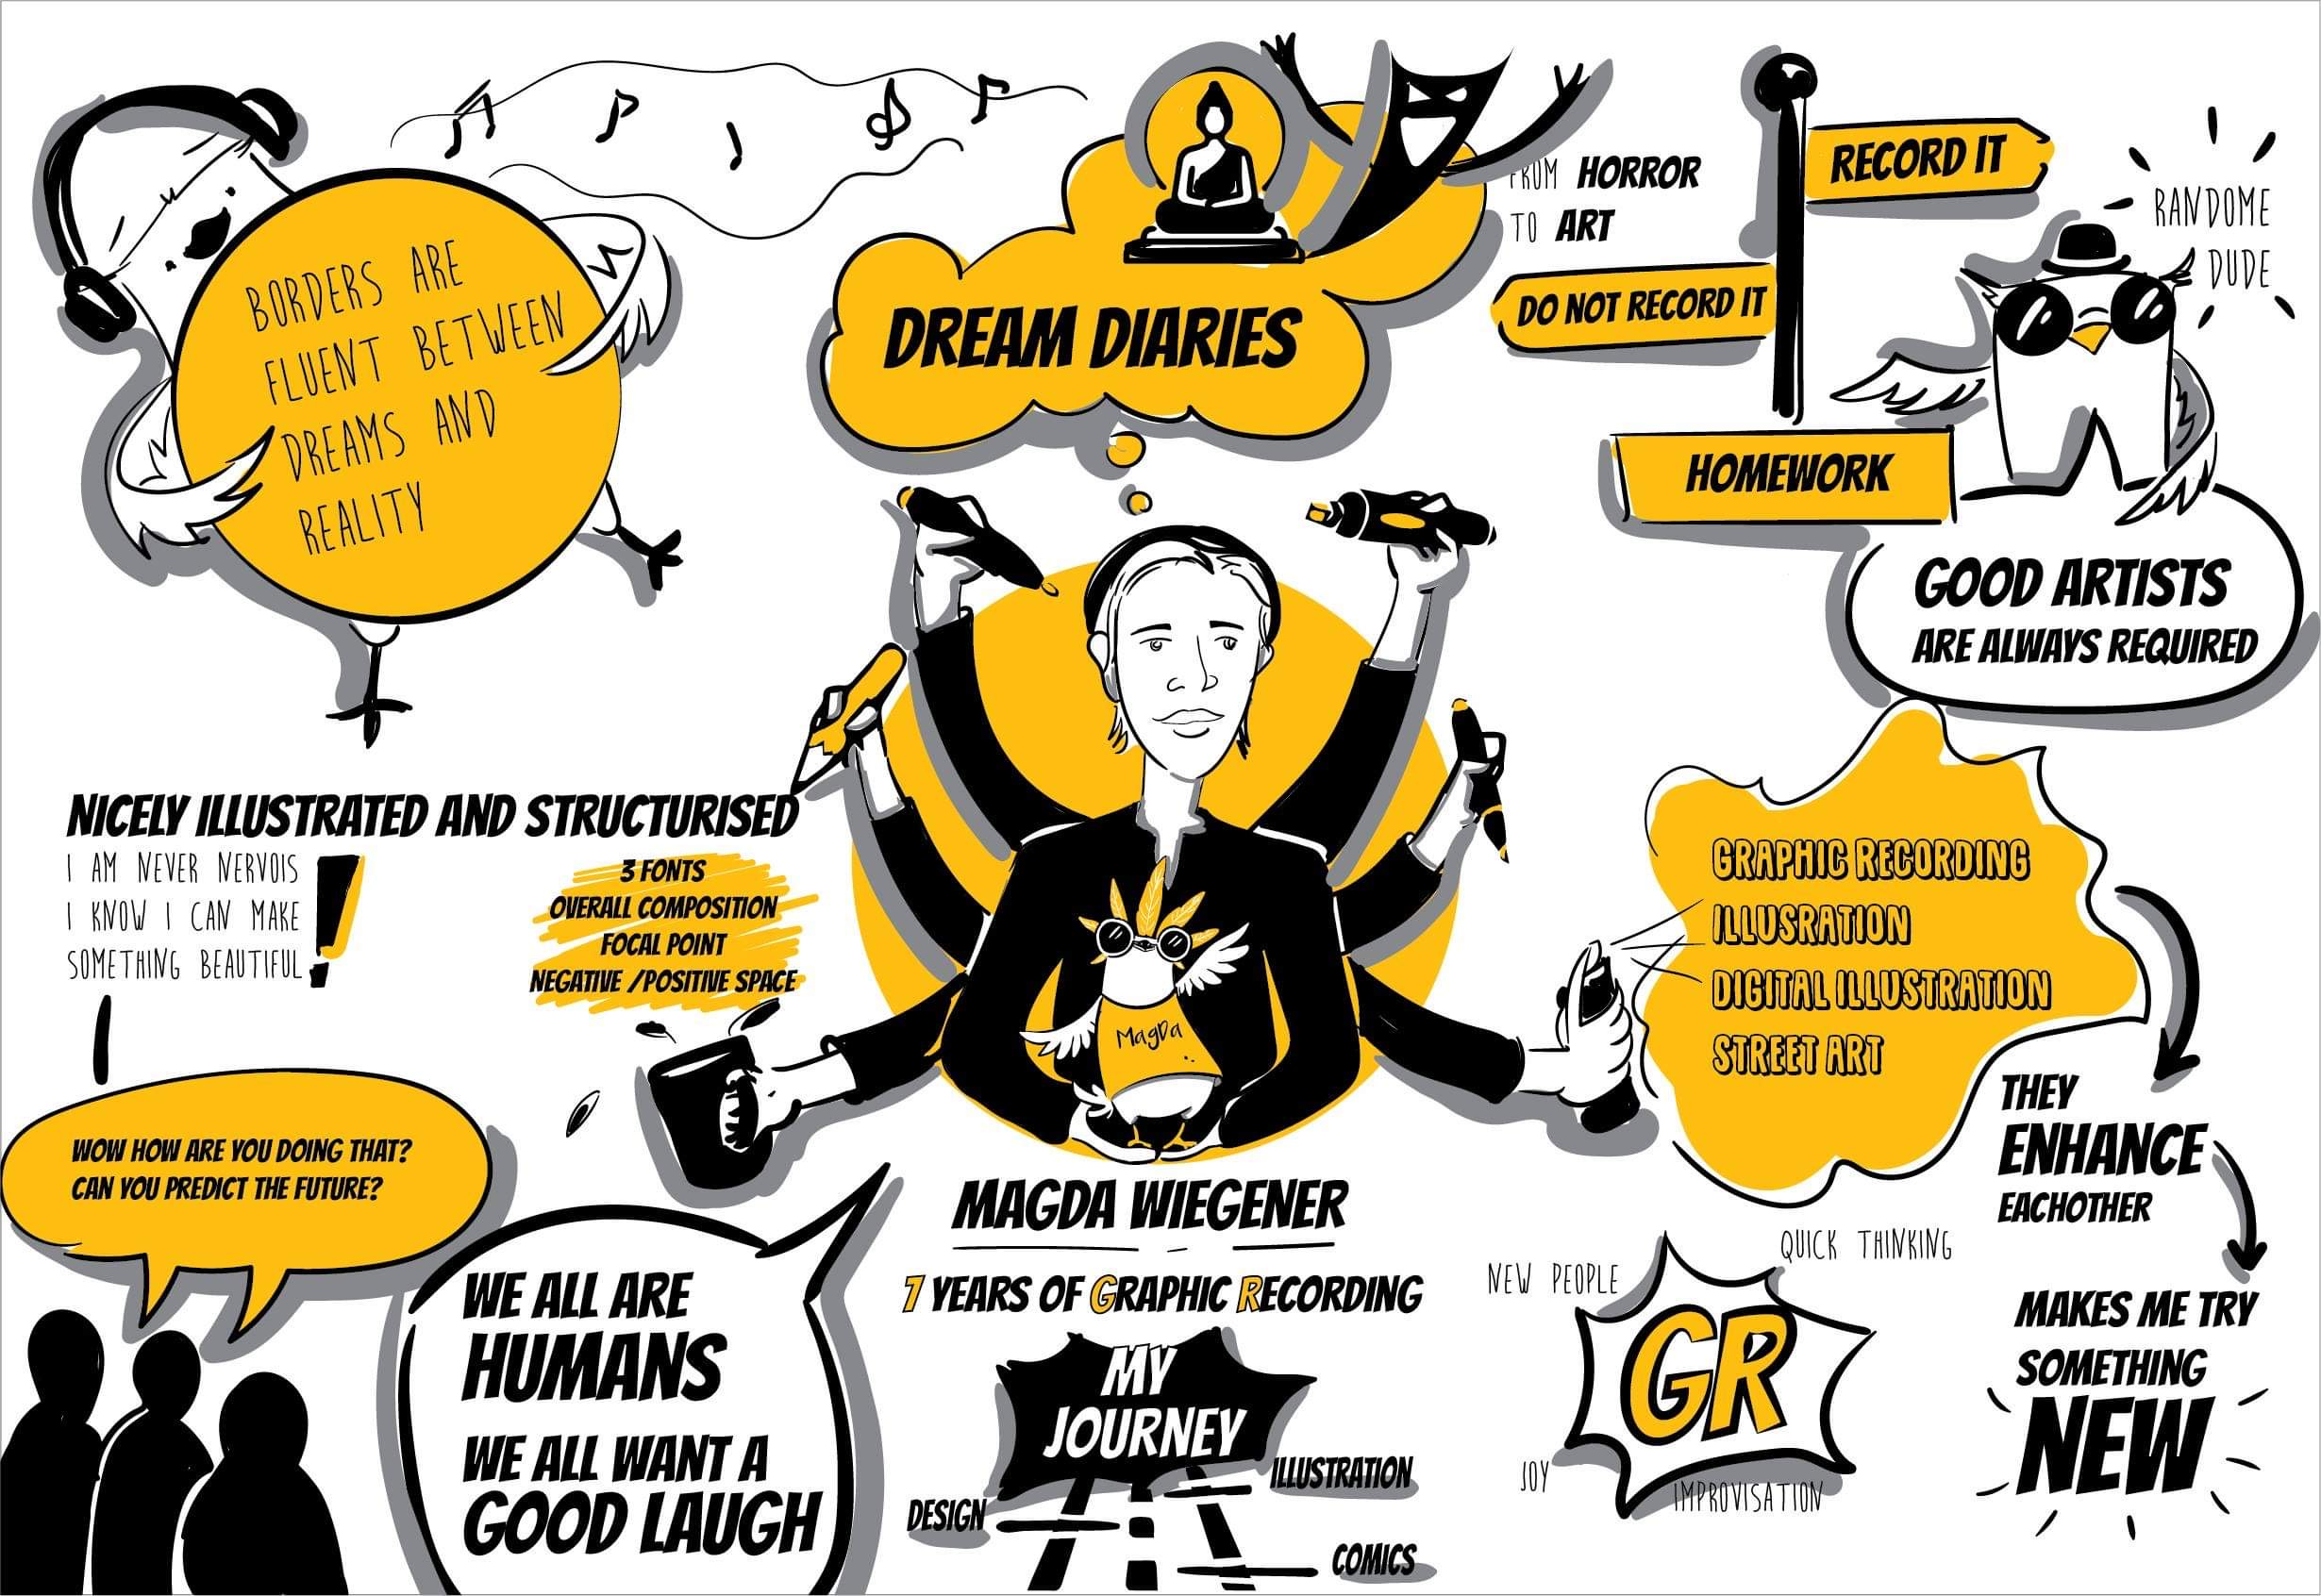 Magdalena Wiegner - Graphic Recording by Yana Crystal